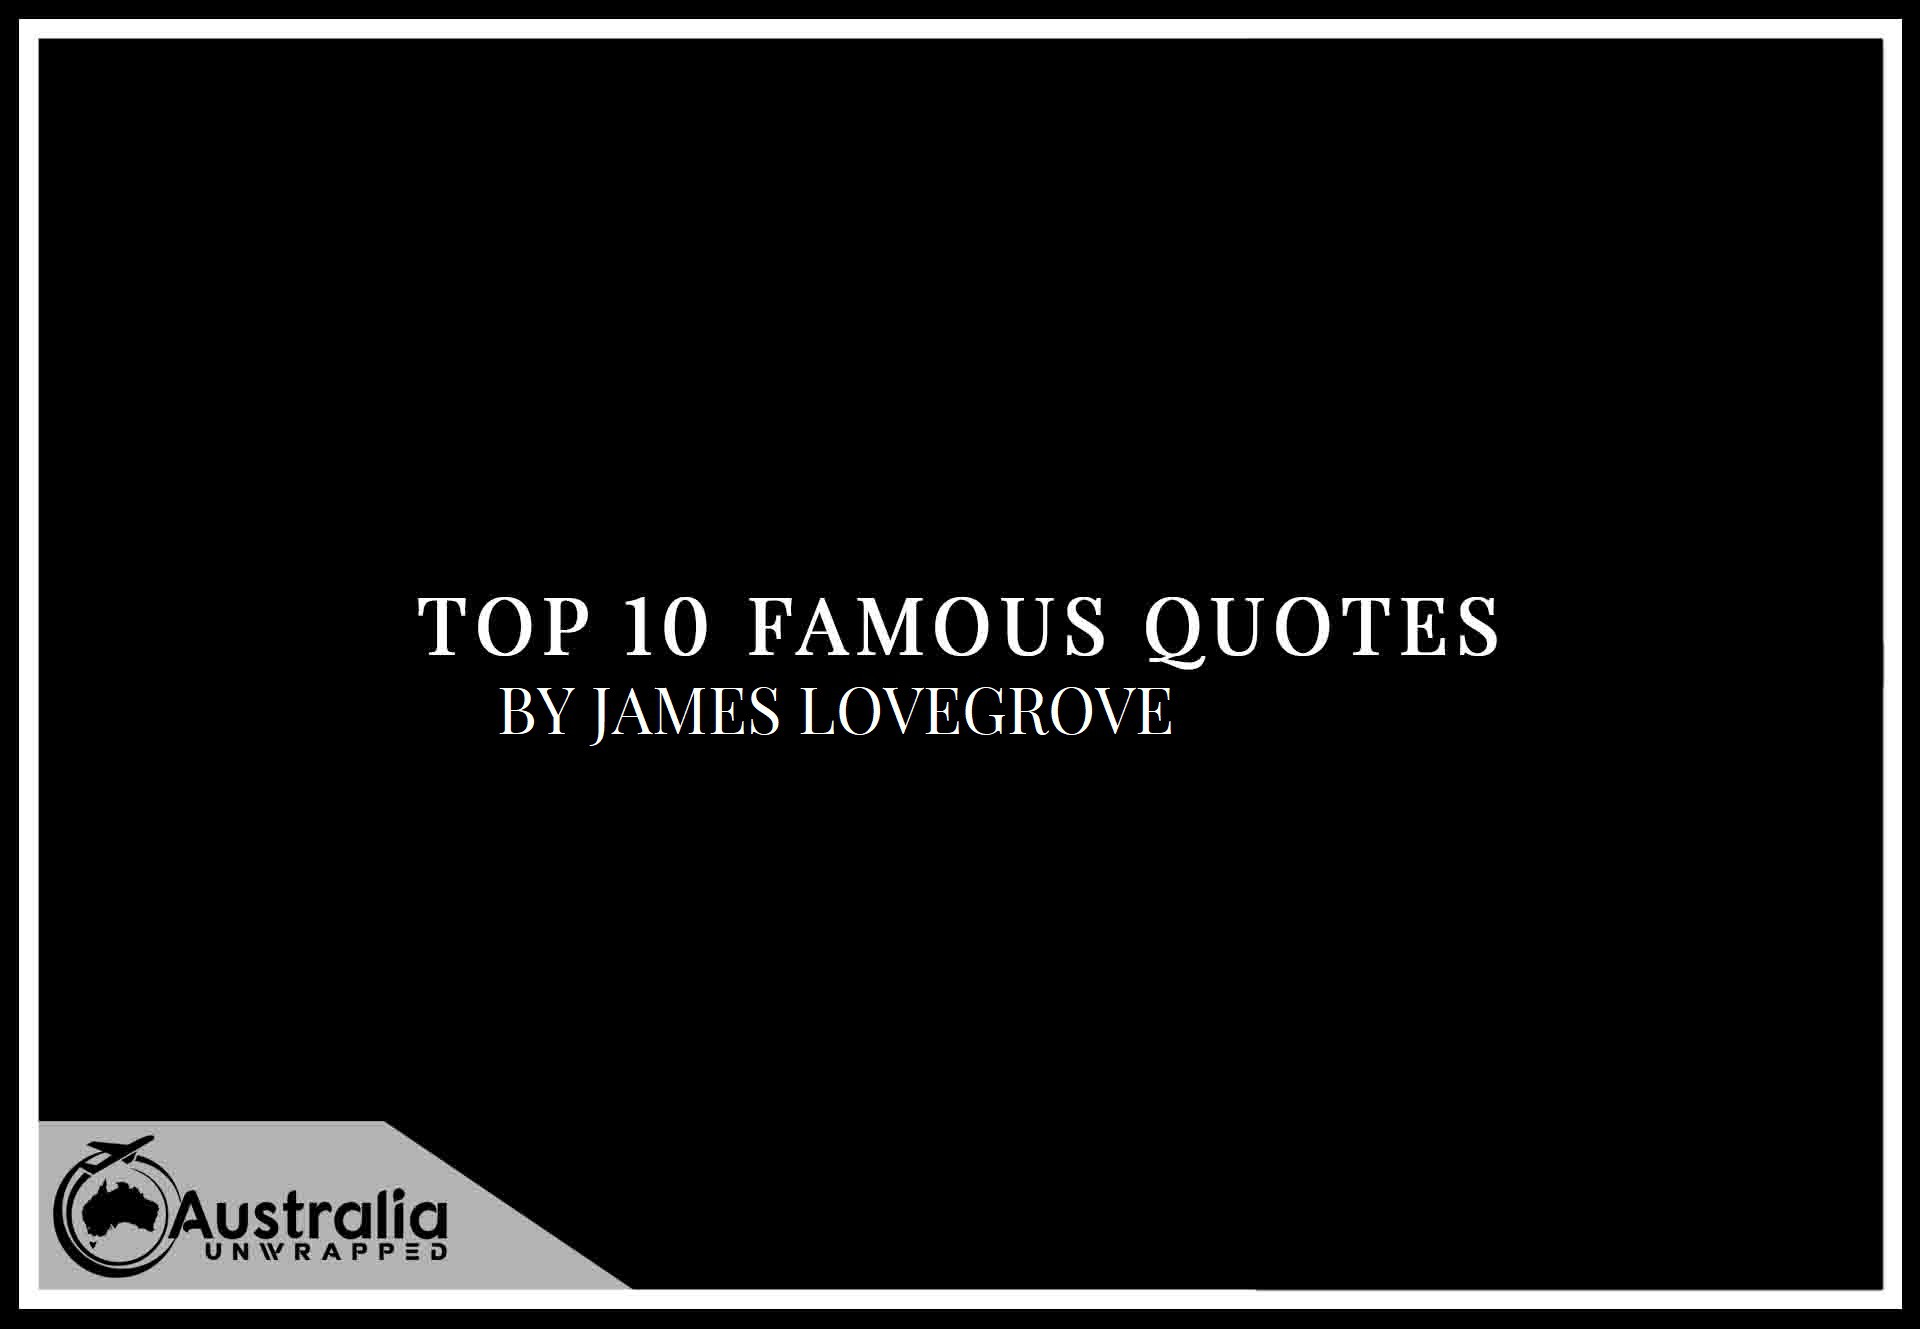 Top 10 Famous Quotes by Author James Lovegrove